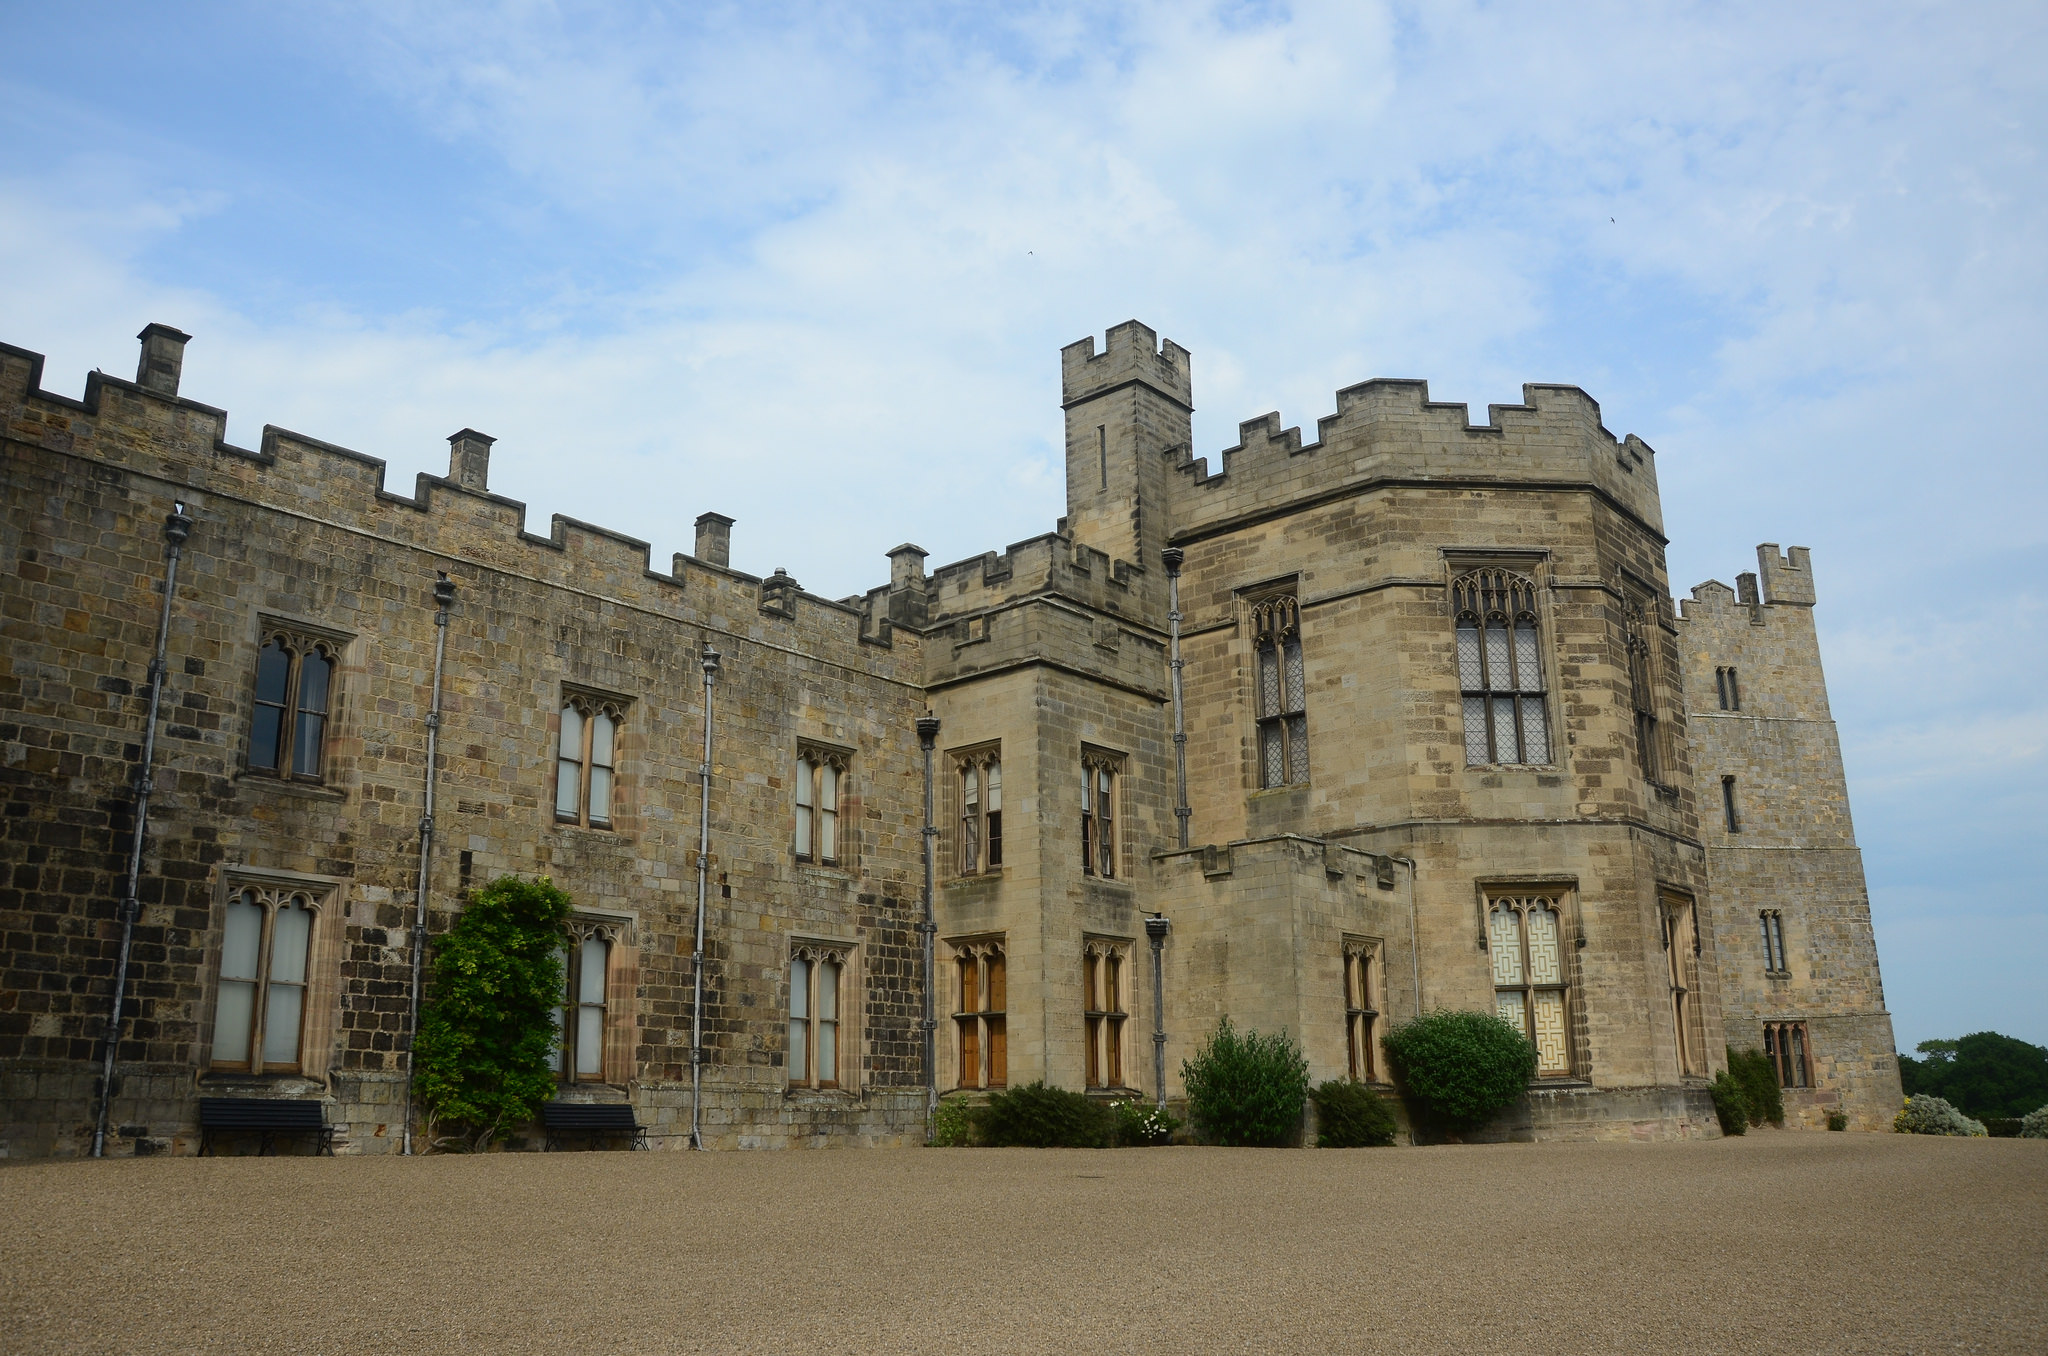 Raby Castle - Castle in England - Thousand Wonders